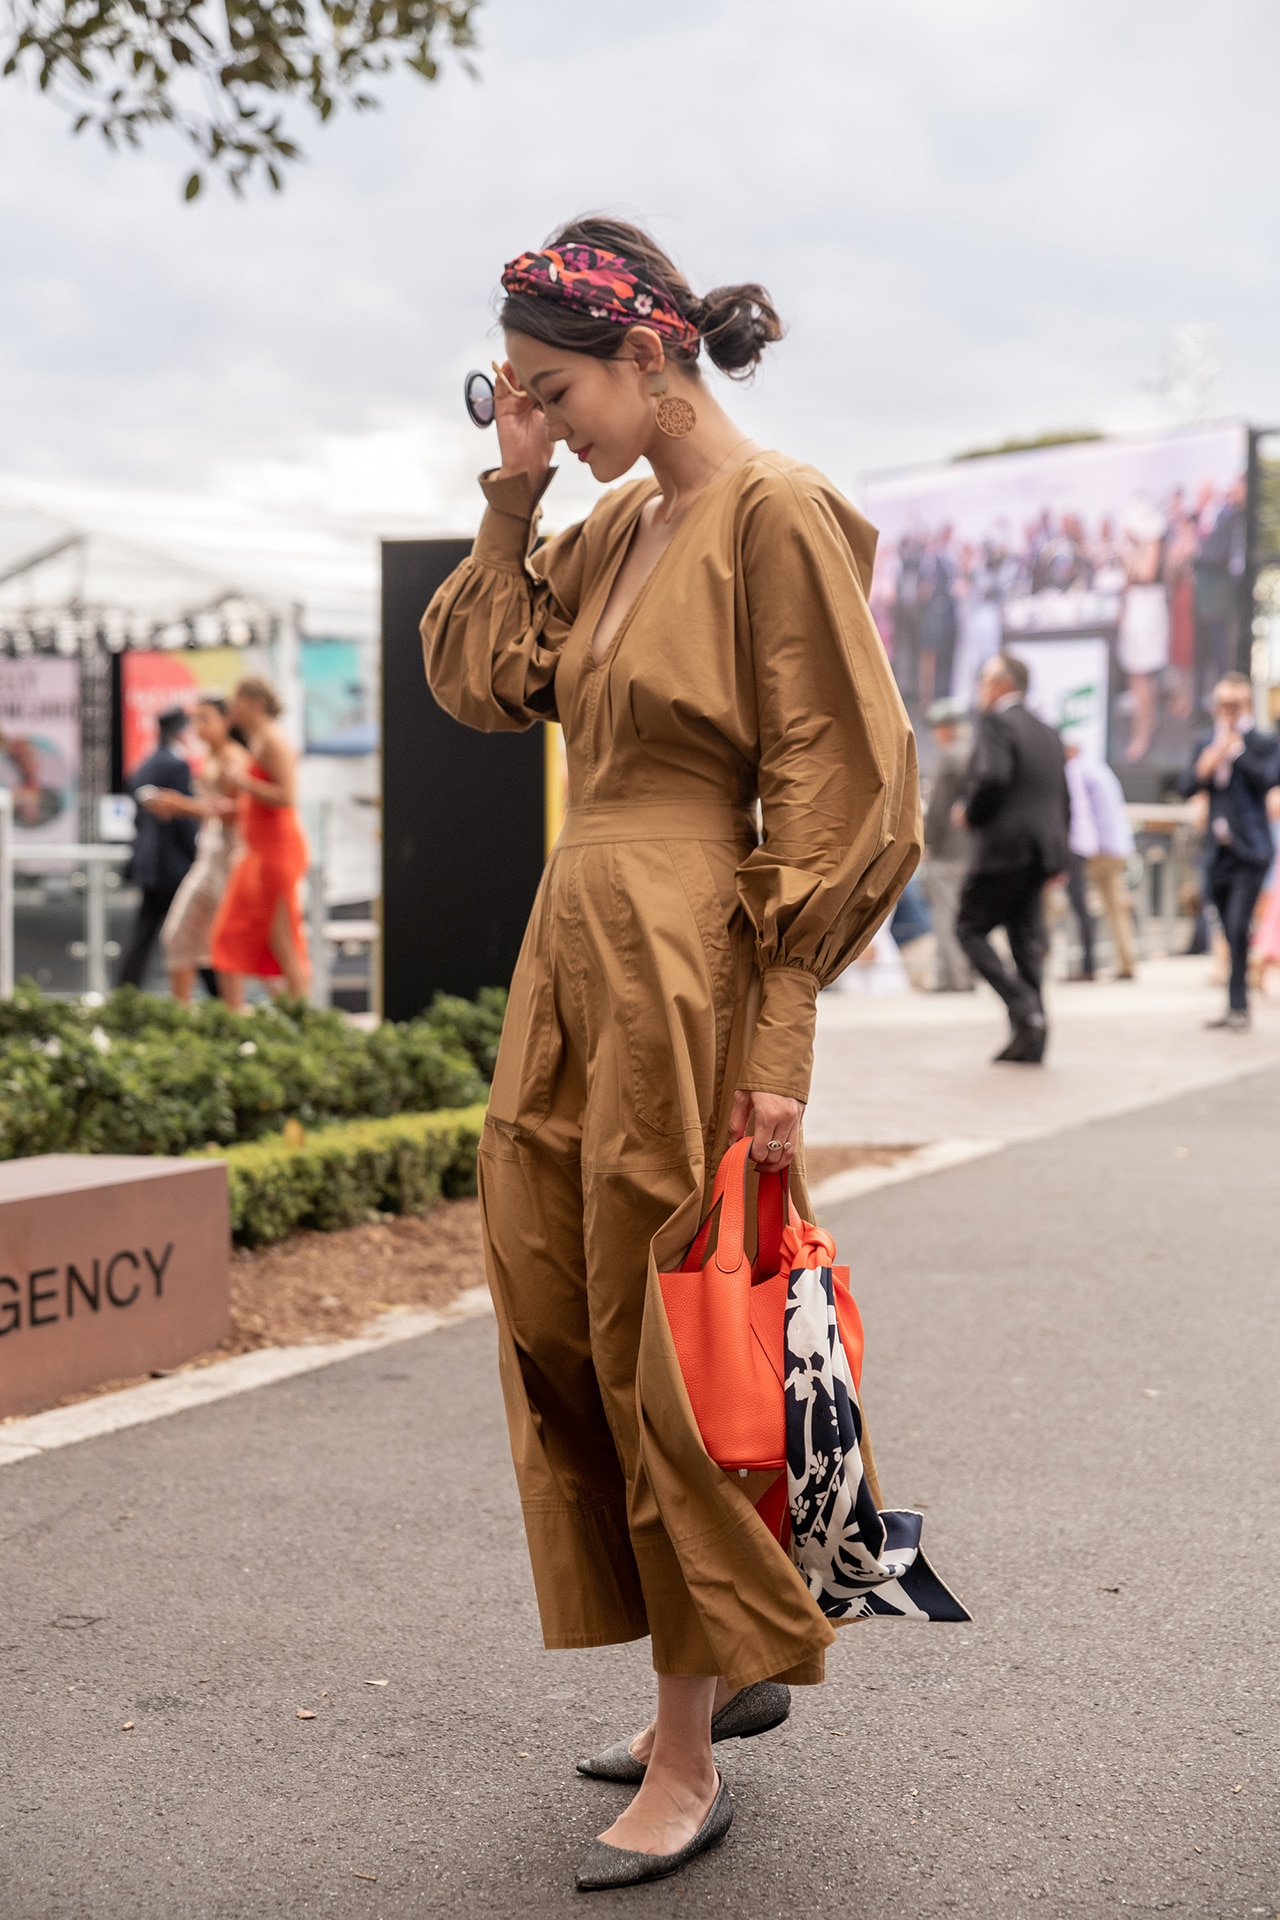 The best street style from The Everest race day 2019